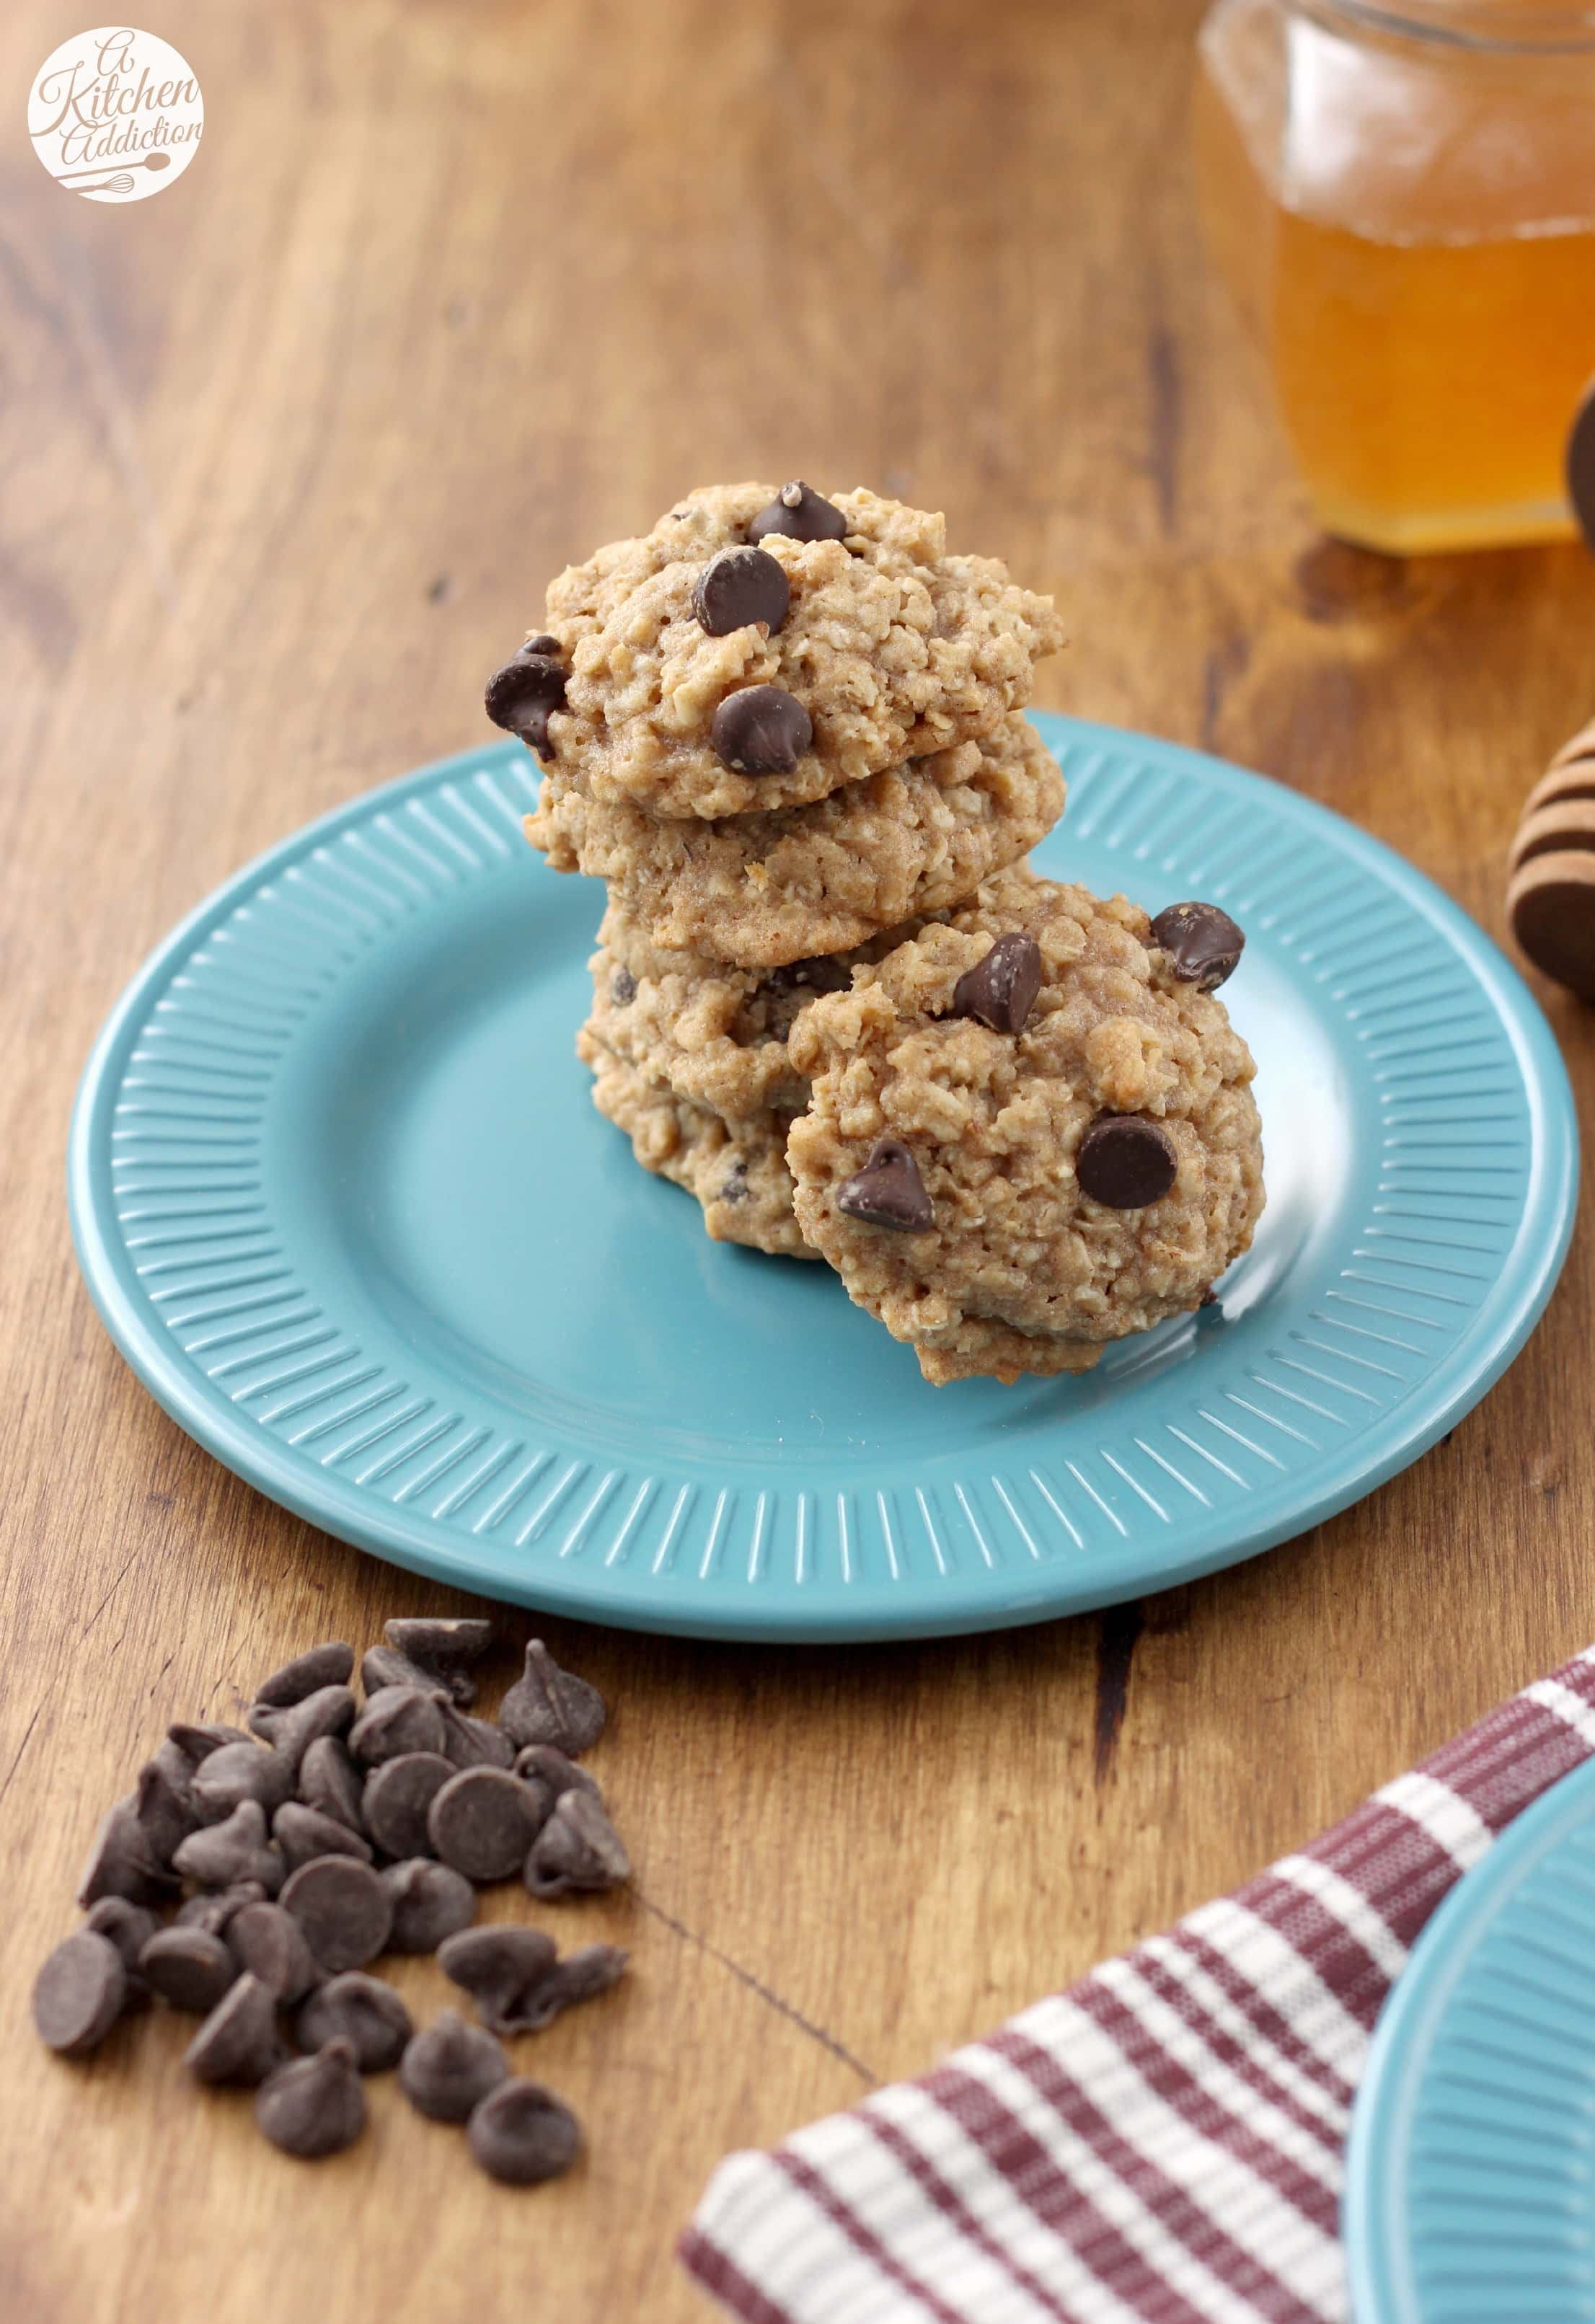 Chewy Whole Wheat Chocolate Chip Oatmeal Cookies - A Kitchen Addiction